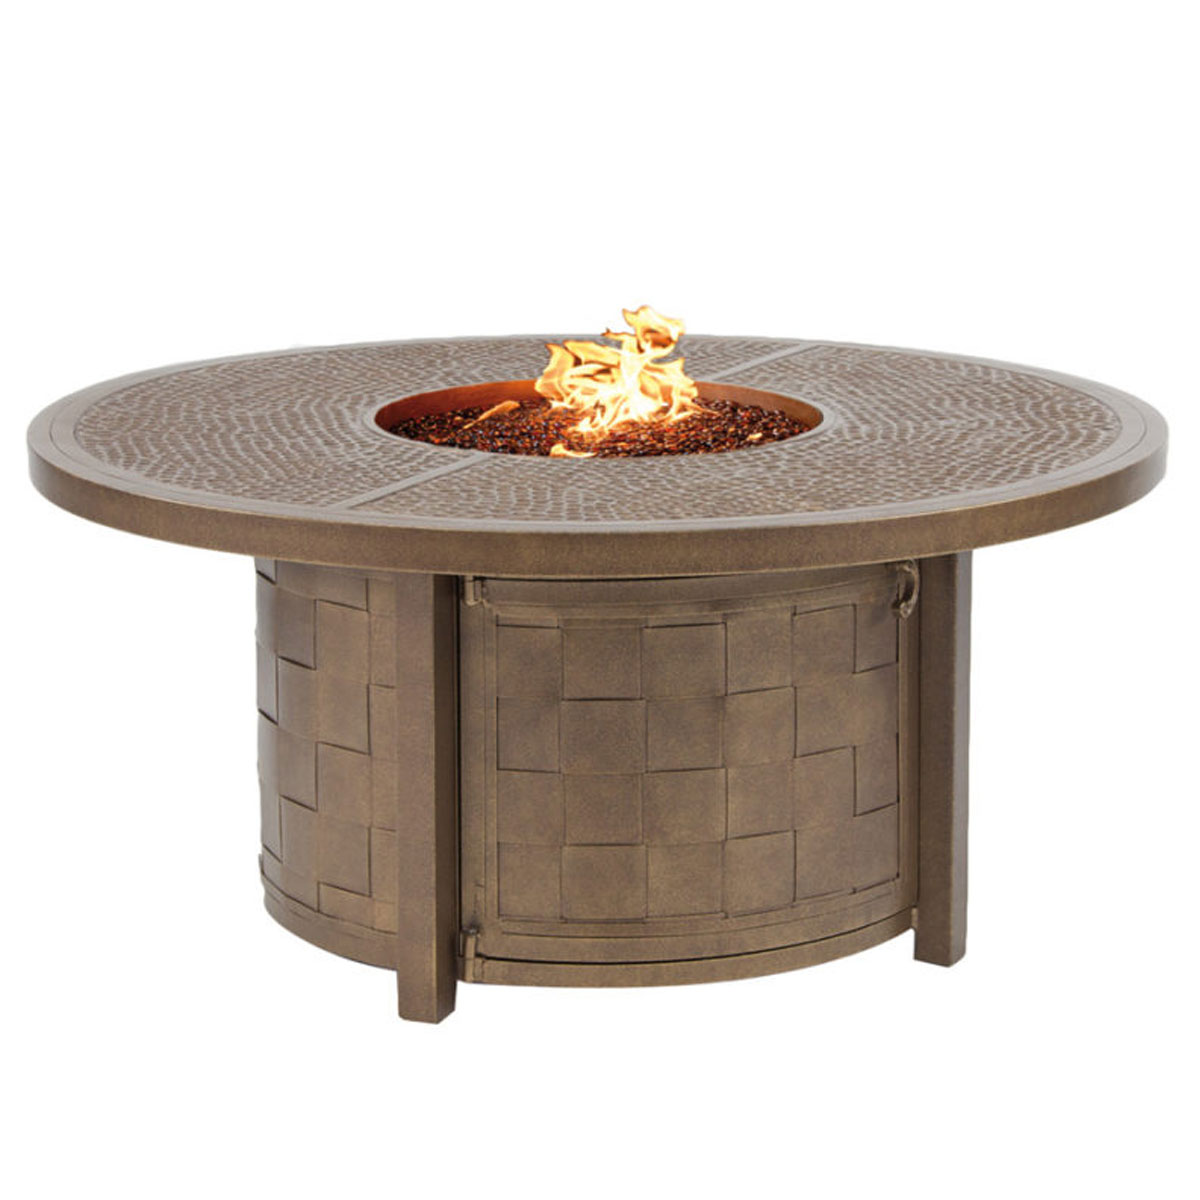 Castelle 49 inch Classical Round Firepit Coffee Table